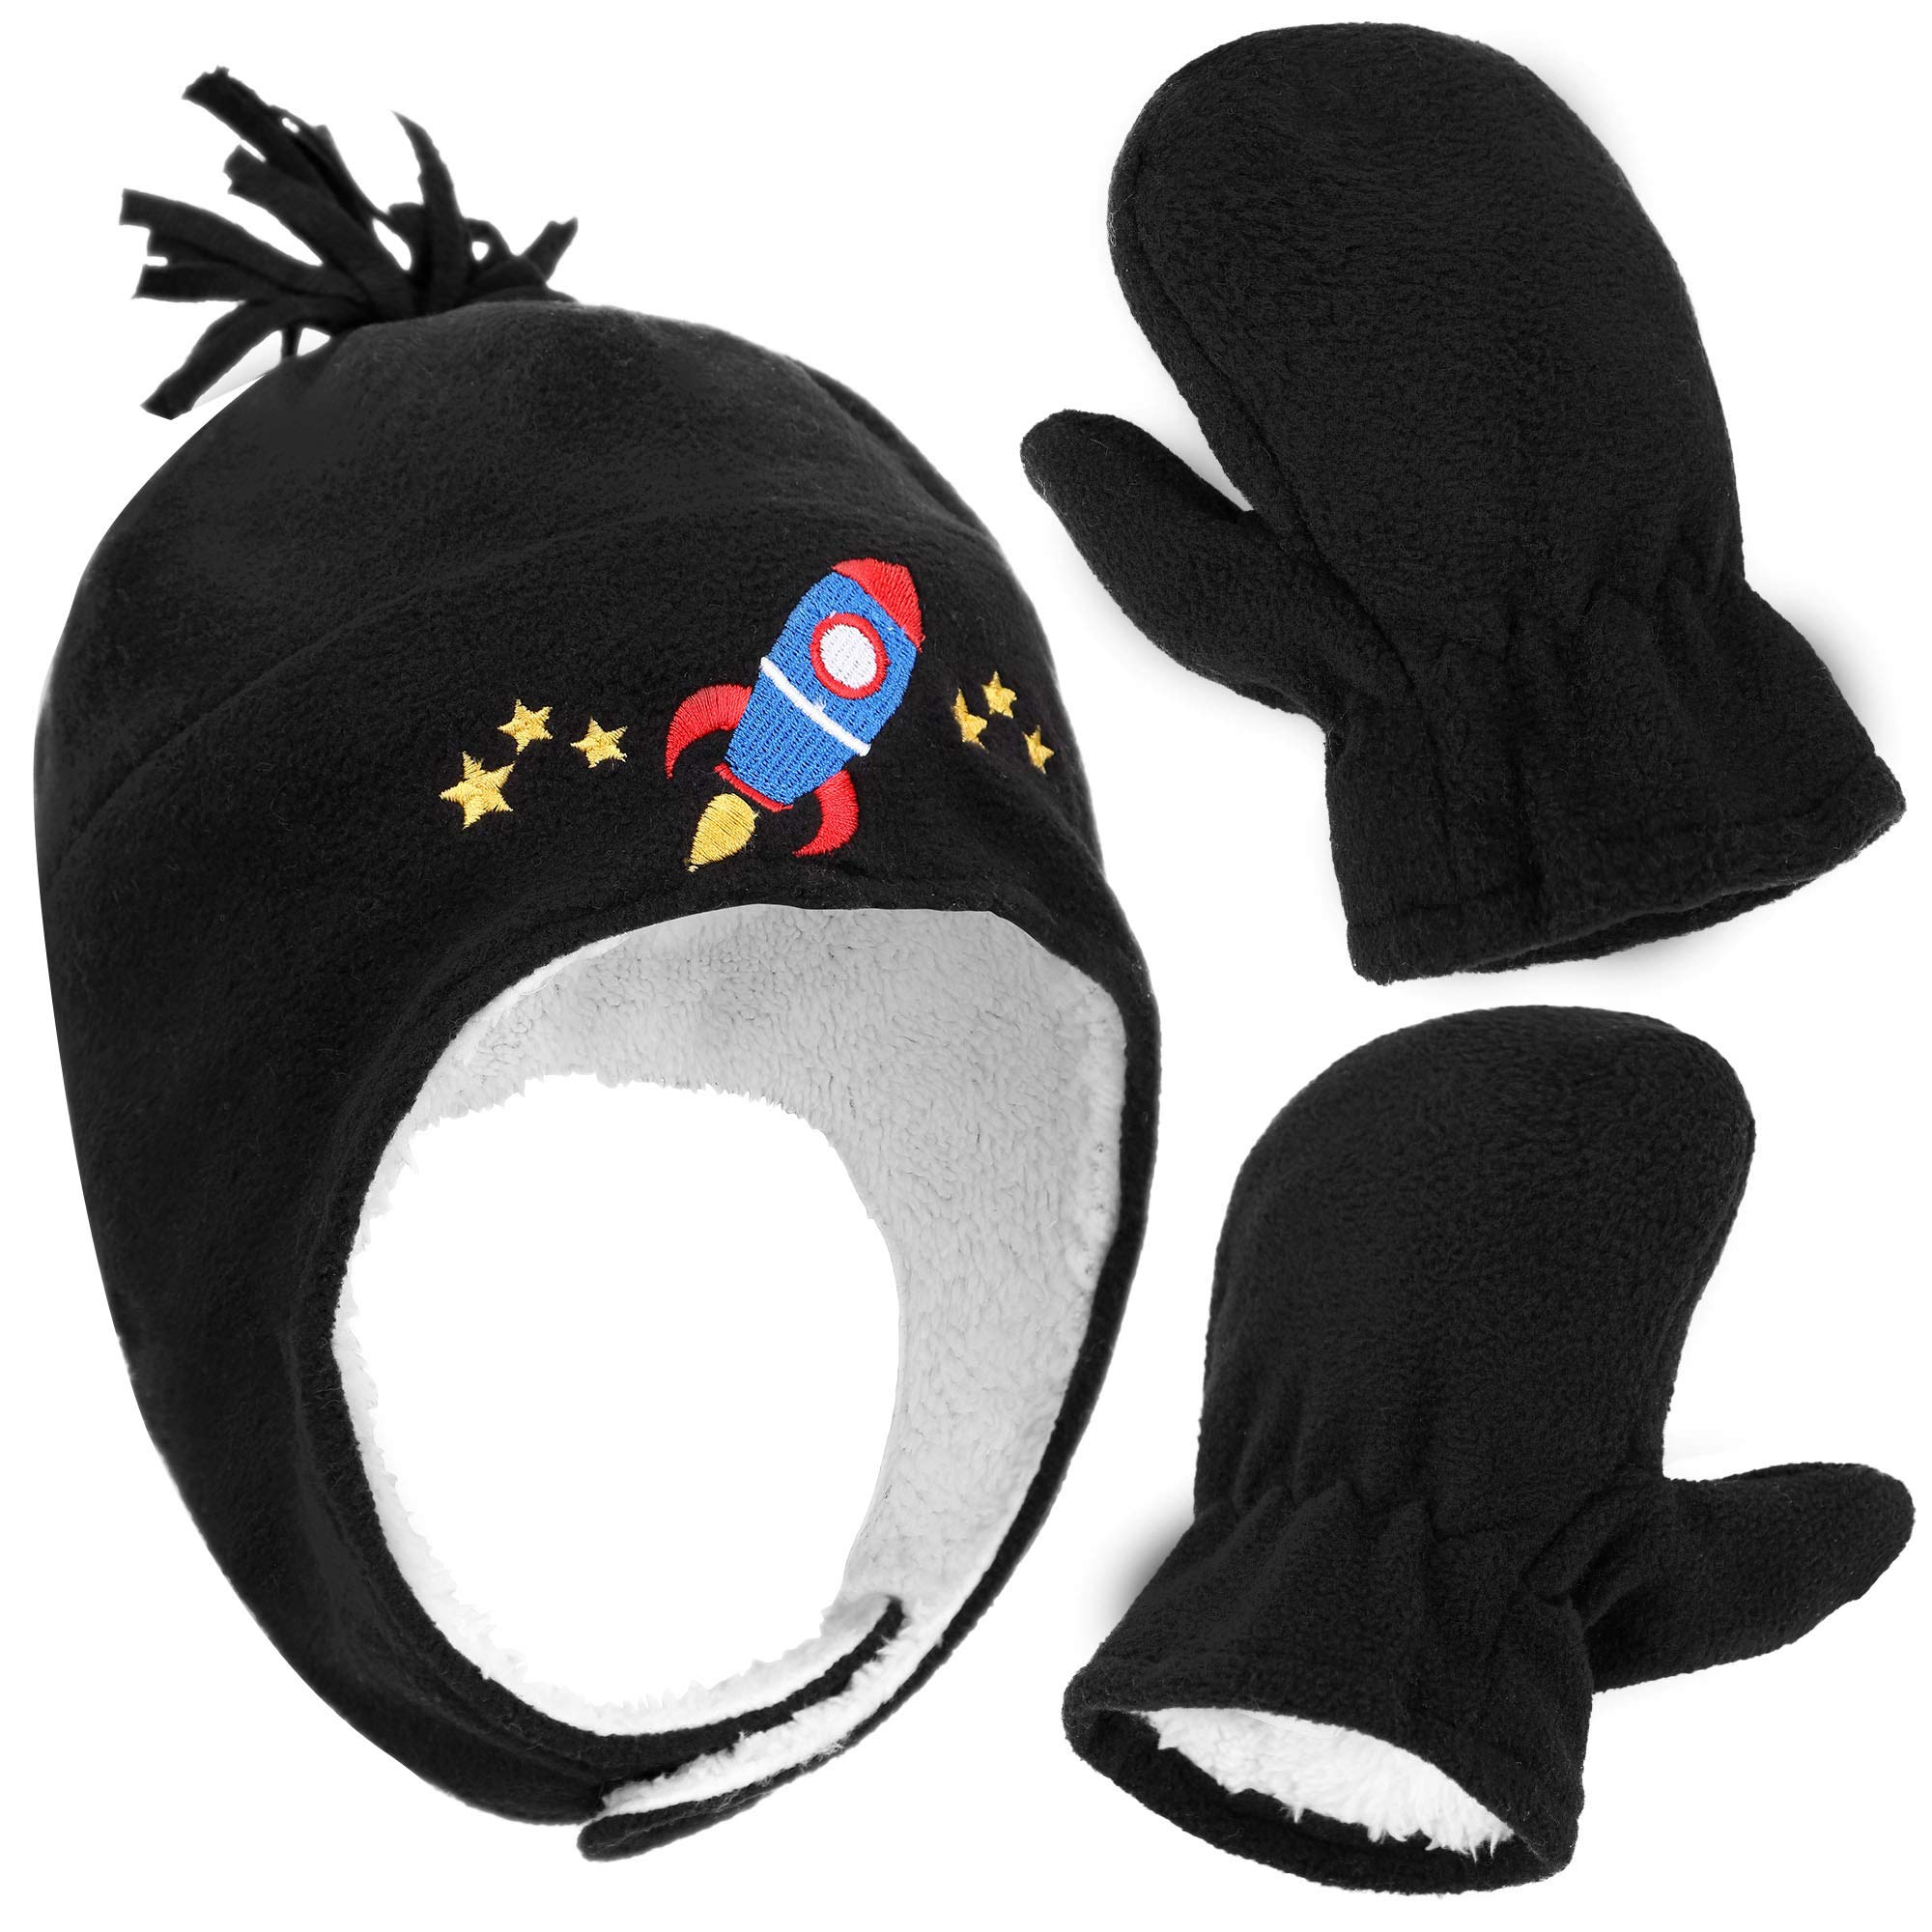 0b00adea130 Boys Sherpa Lined Rocketship Embroidered Fleece Hat and Gloves Set ...